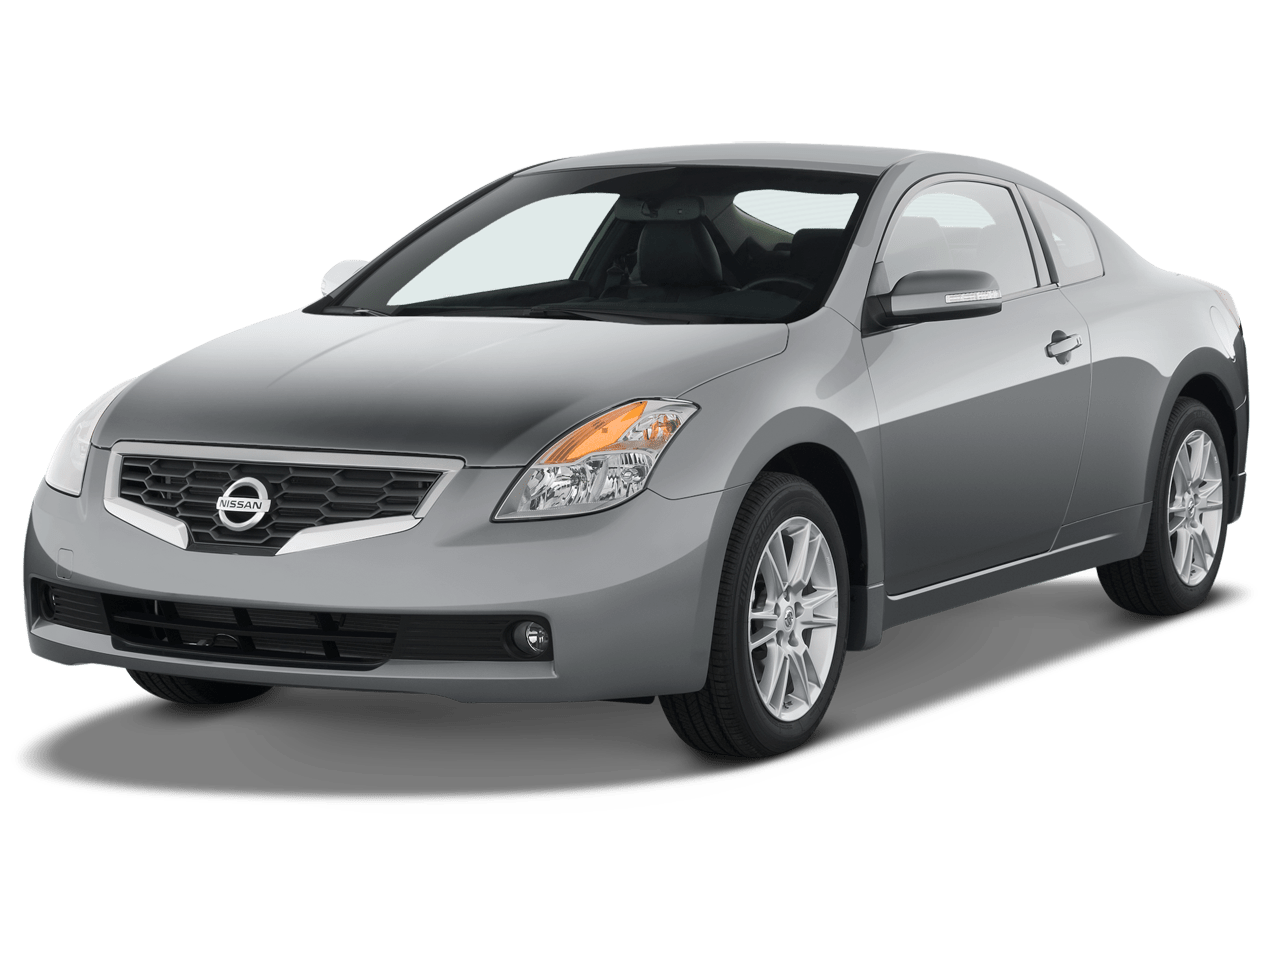 2008 Nissan Altima Review And Rating Motor Trend